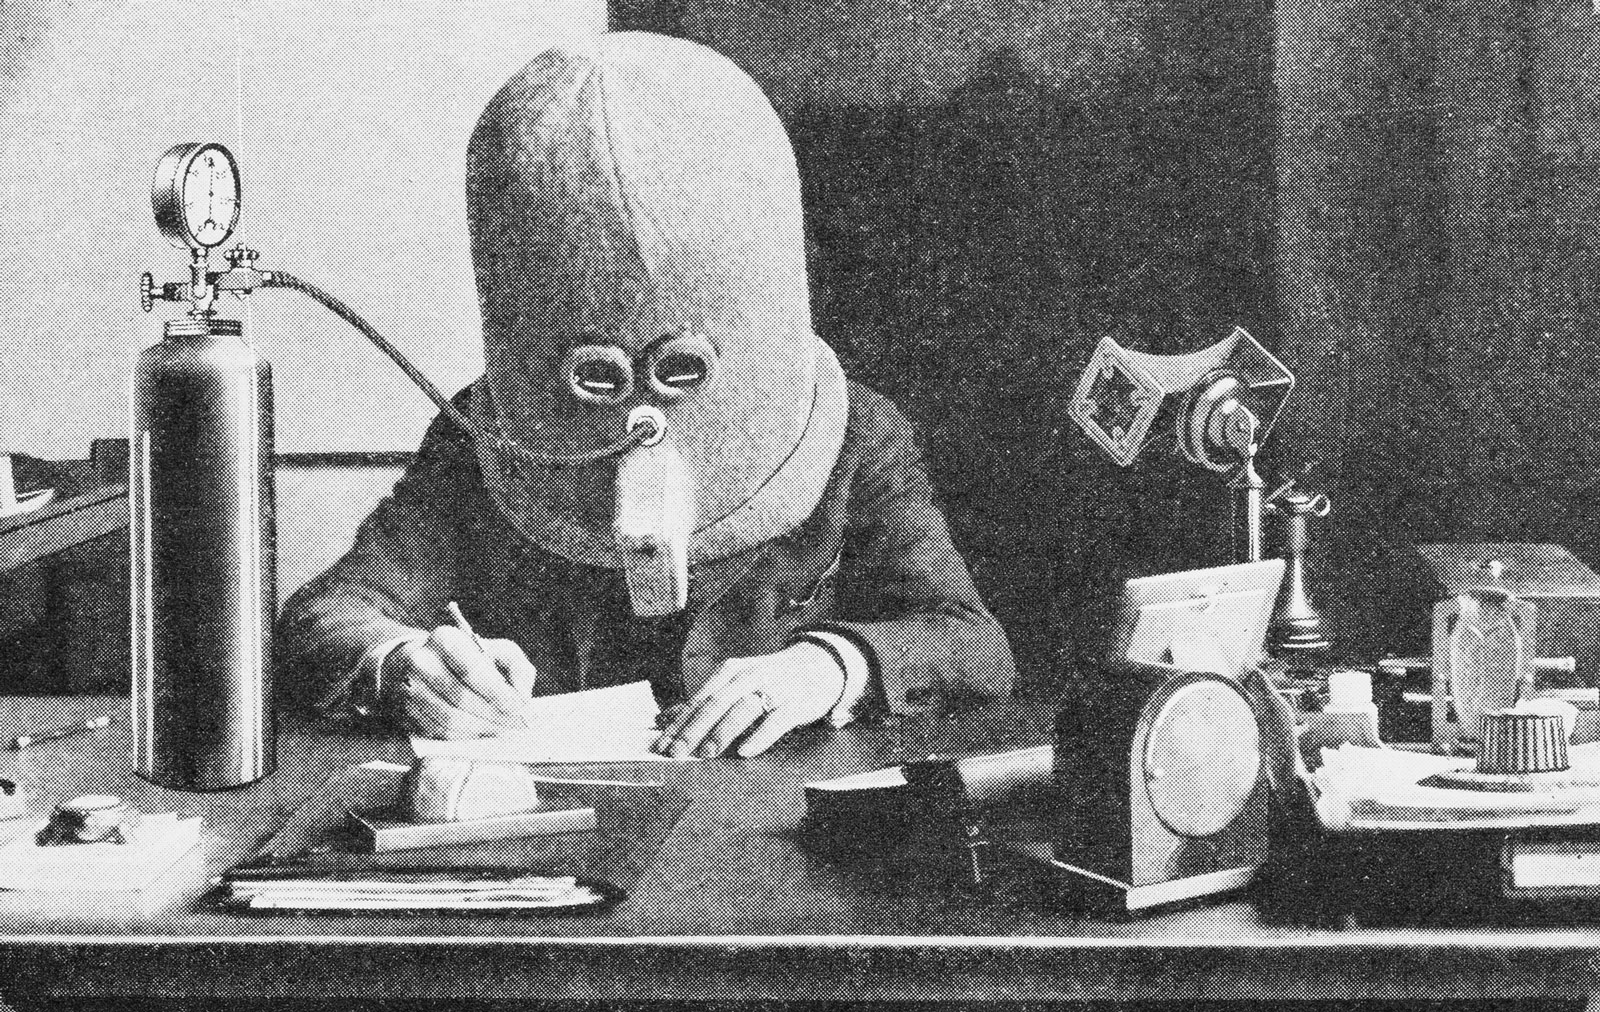 Illustration : Hugo Gernsback wearing his Isolator, which eliminates external noises for concentration, in Science and Invention, juillet 1925. Syracuse University Libraries, Special Collections Research Center.